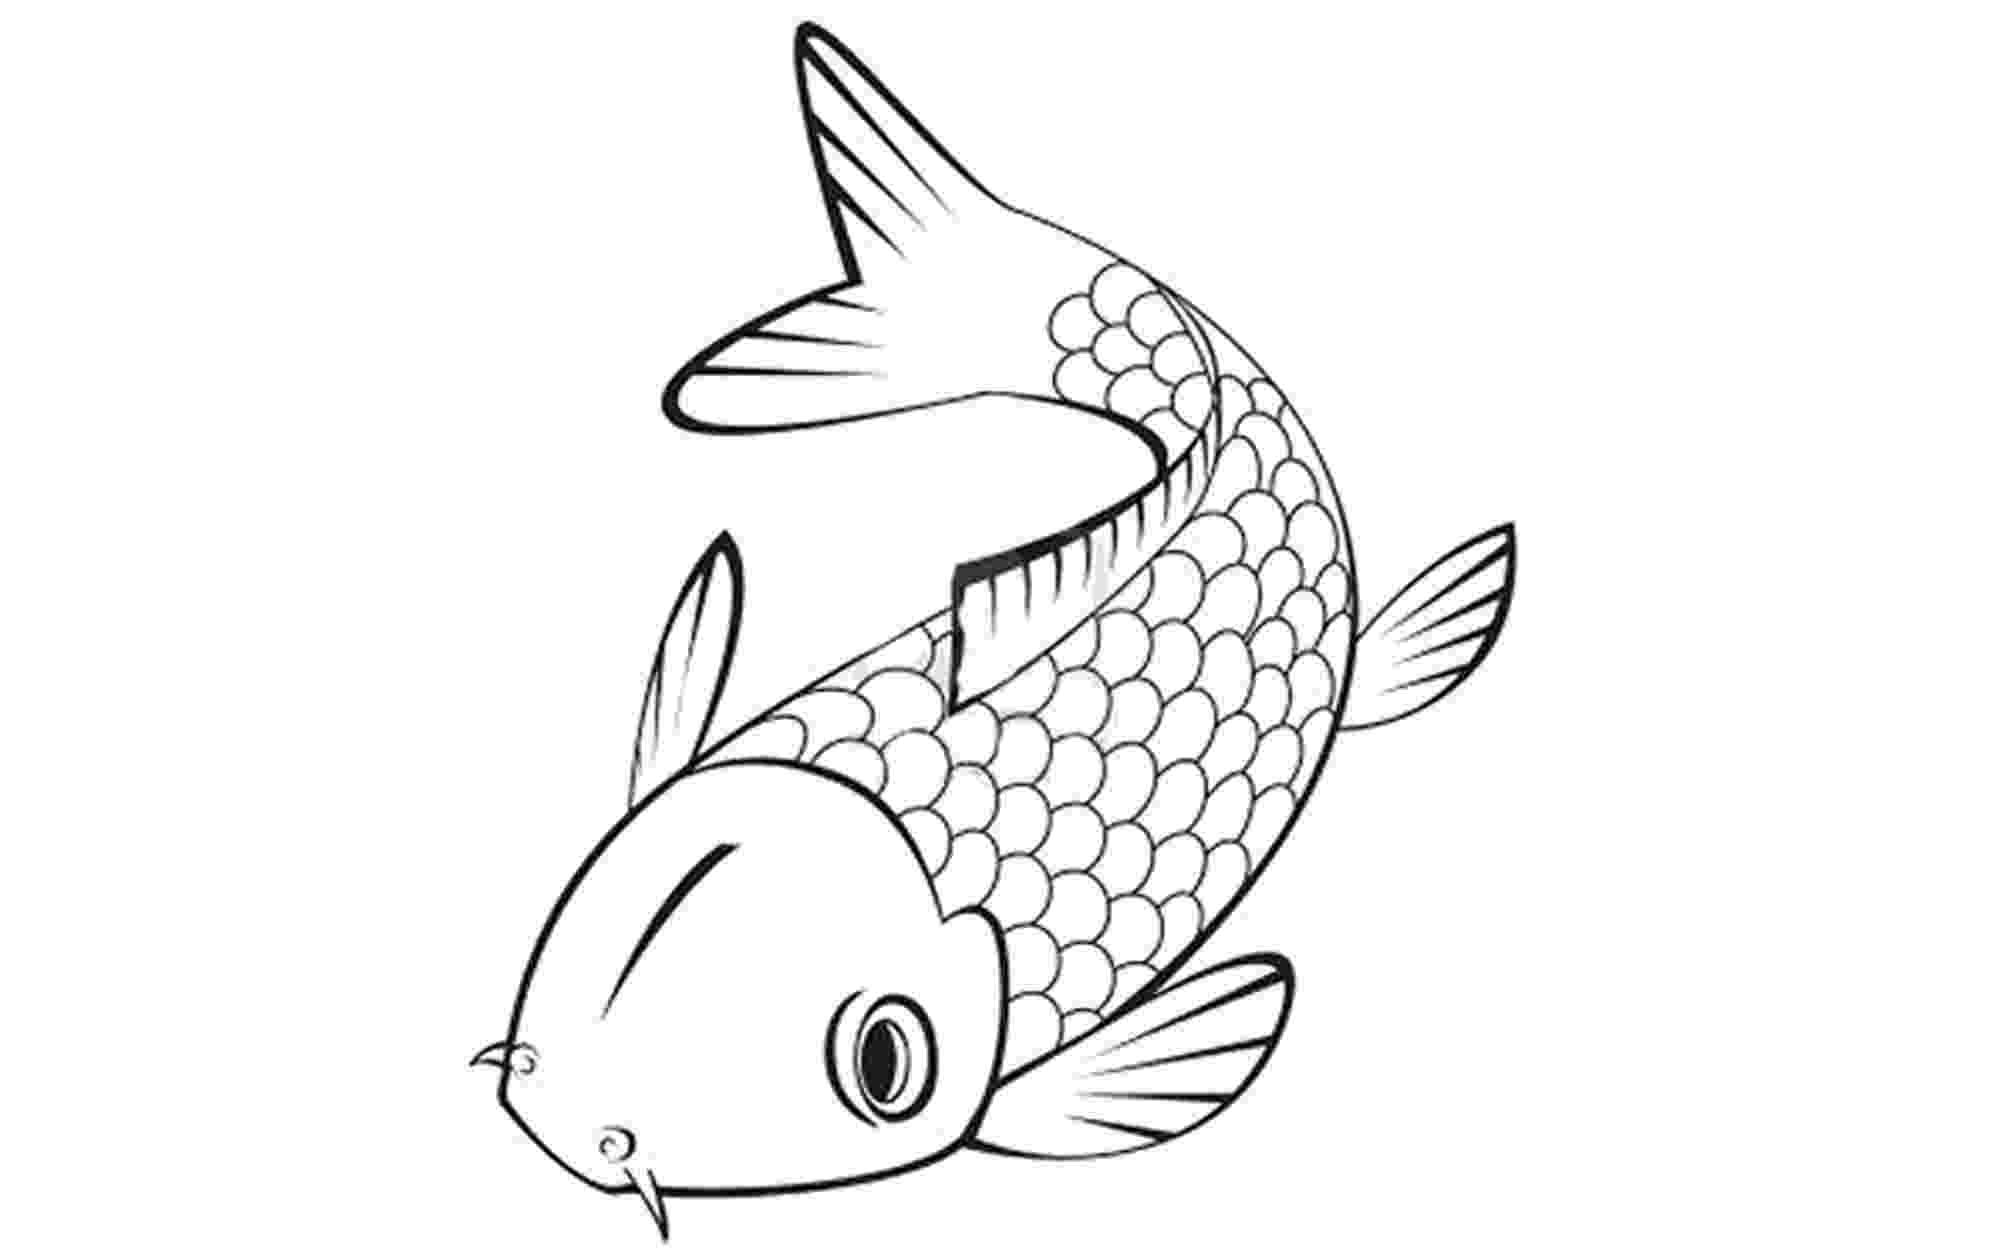 fishes coloring pages print download cute and educative fish coloring pages coloring fishes pages